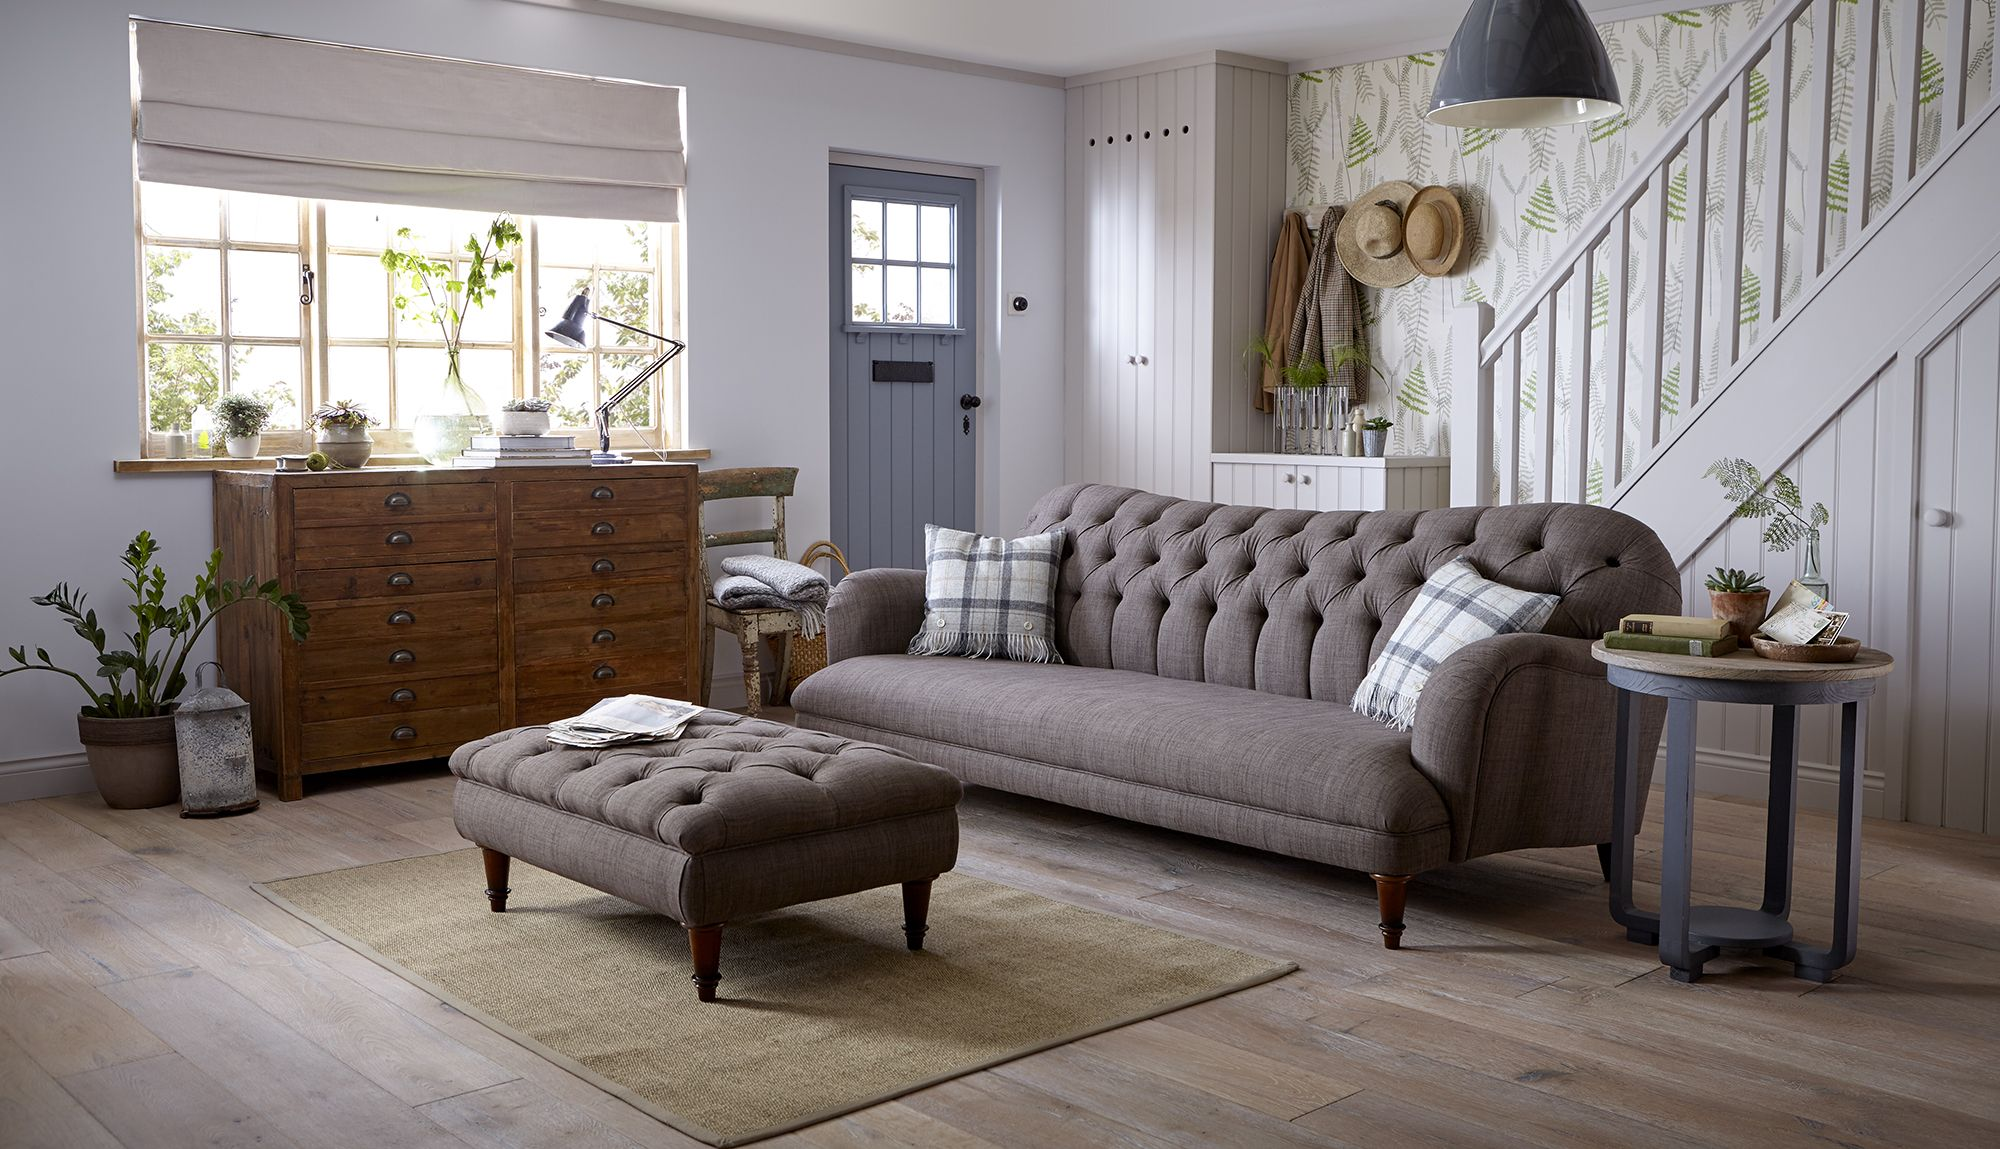 Sofa And Stuff Woodchester Malvern Sofa Dfs Sofa Daily